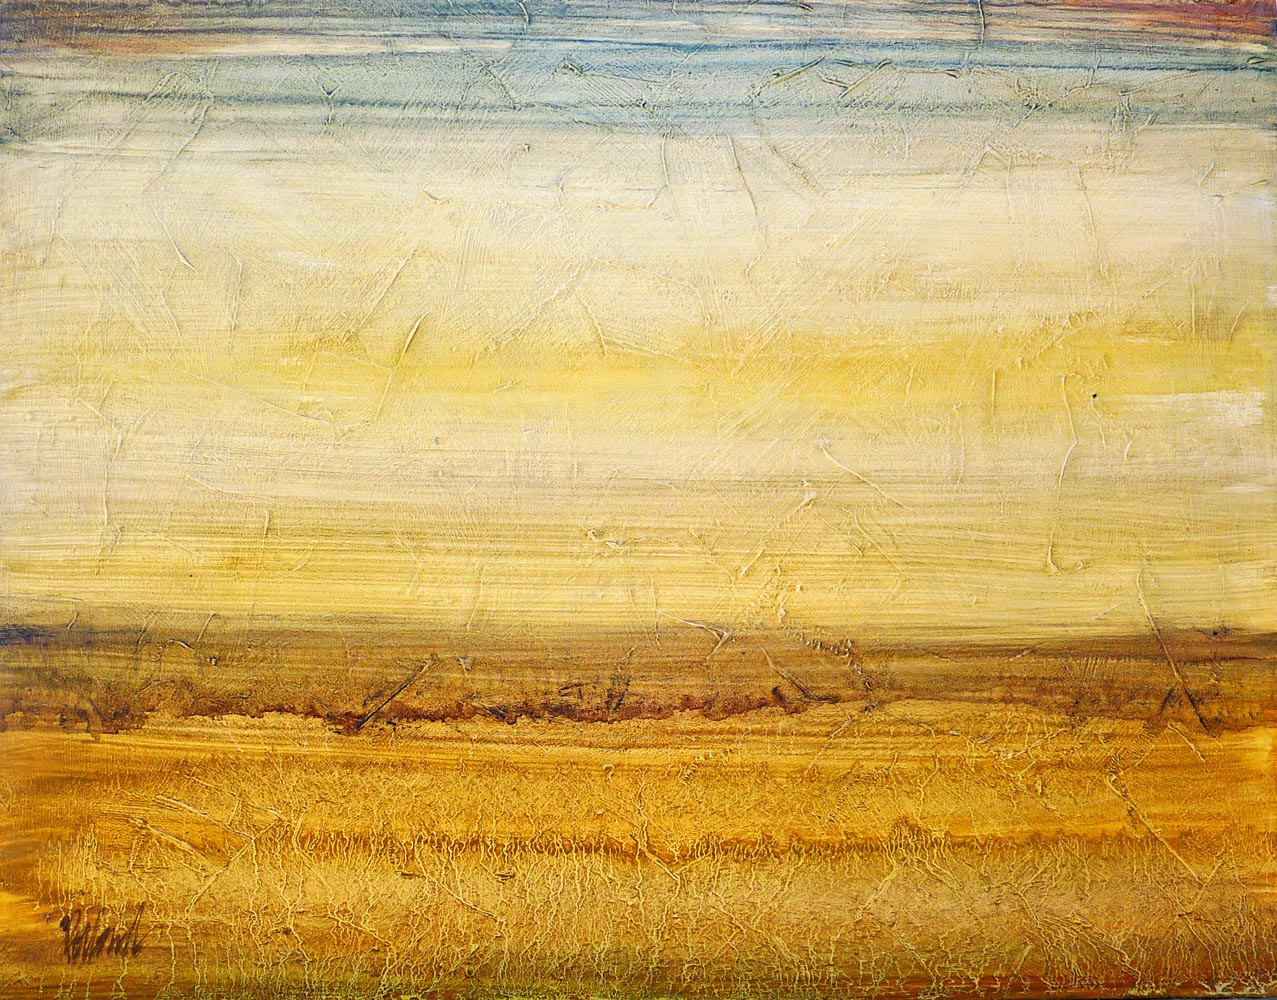 harvest| dreamscapes | Artist painter Kim Pollard | Canada | Pacific Northwest